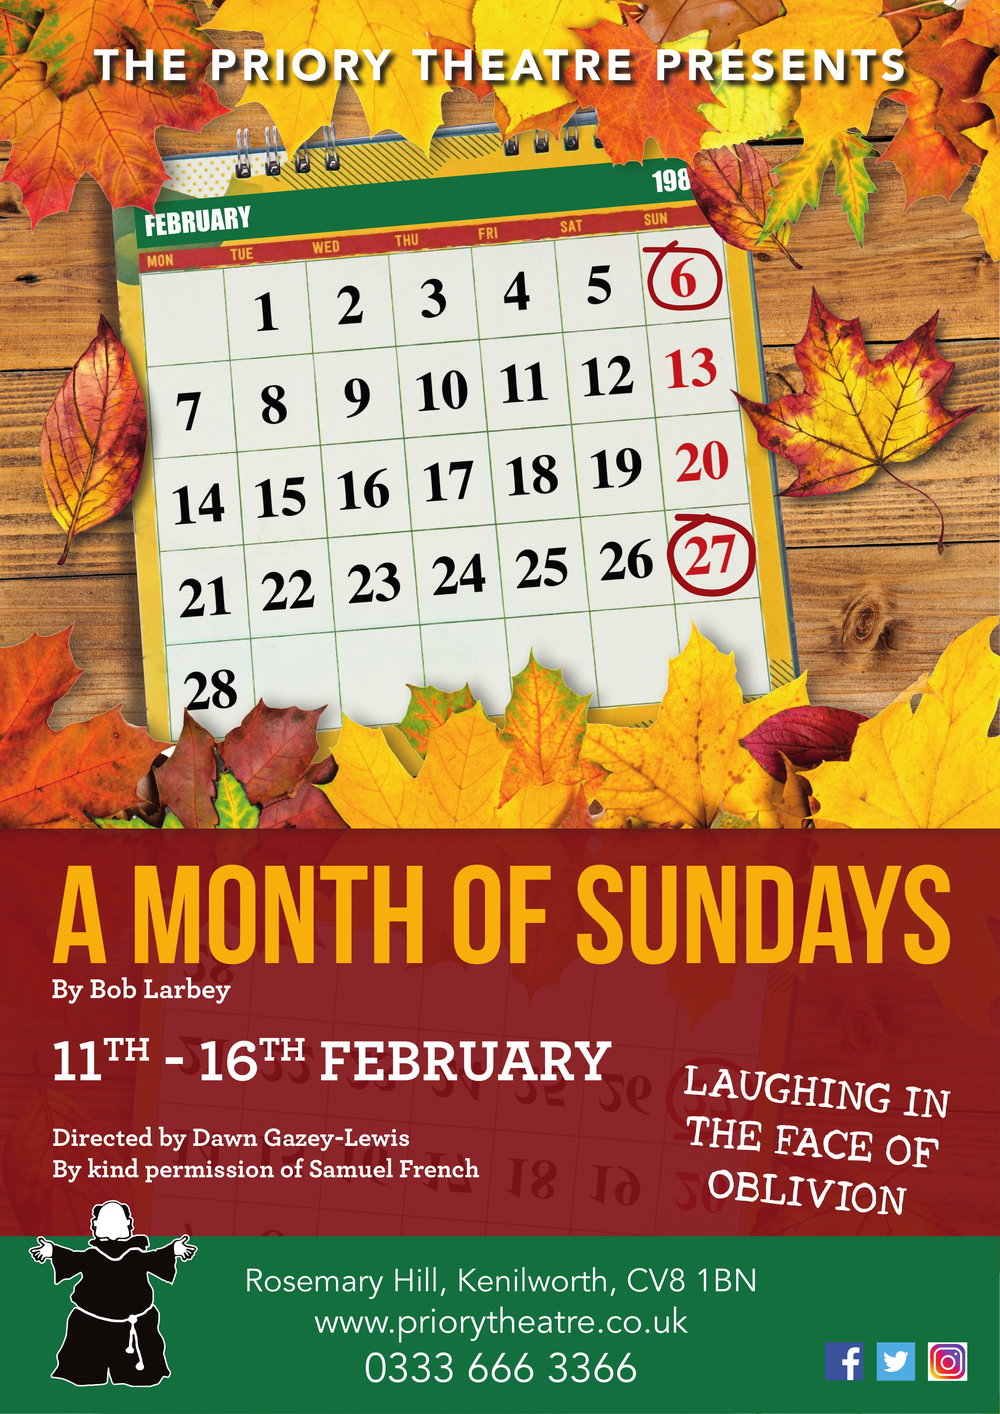 1 A Month of Sundays Poster-1.jpg